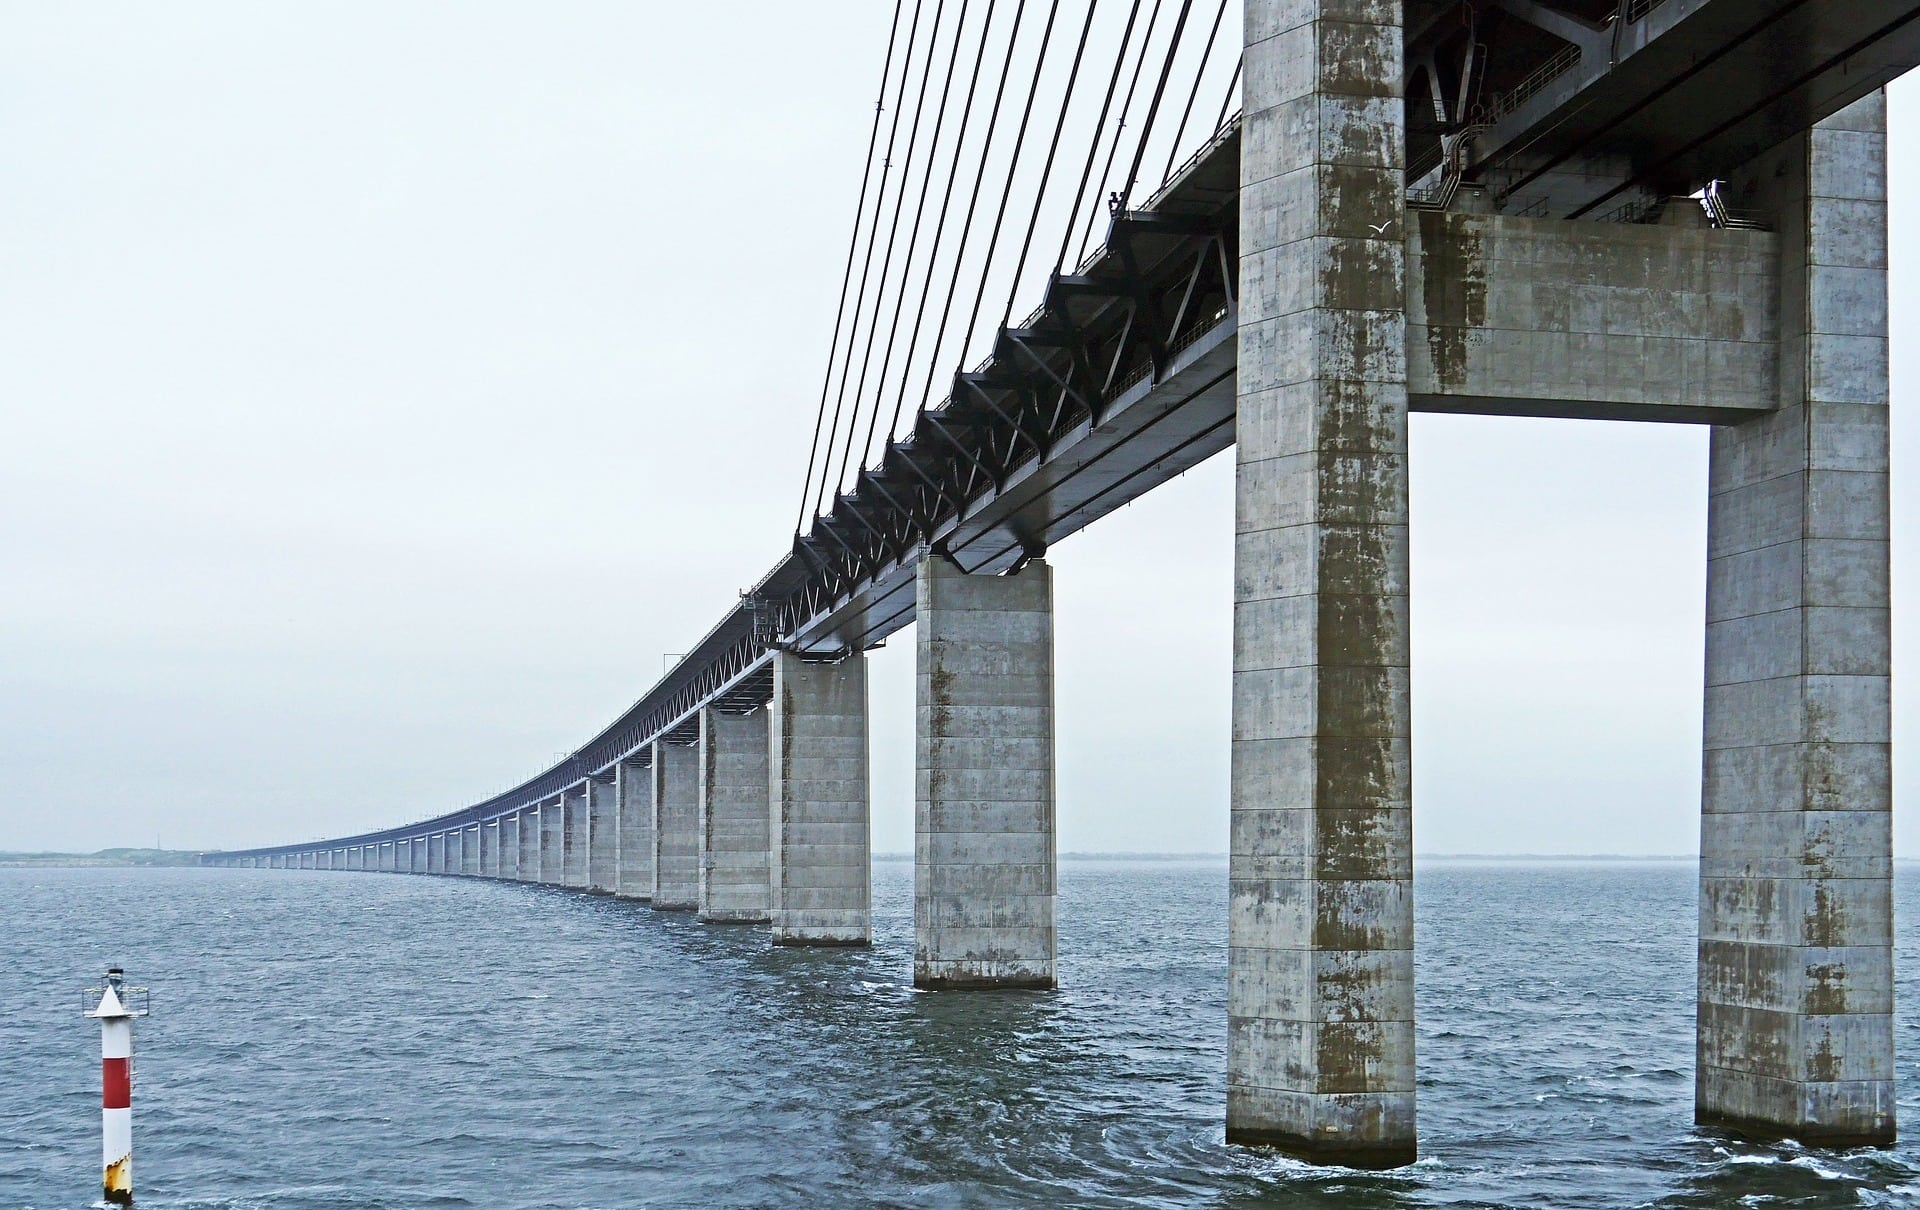 The Øresund Bridge spans the Øresund, a strait between Denmark and Sweden, and the narrowest point between the North Sea and Baltic Sea / Baltic Sea.